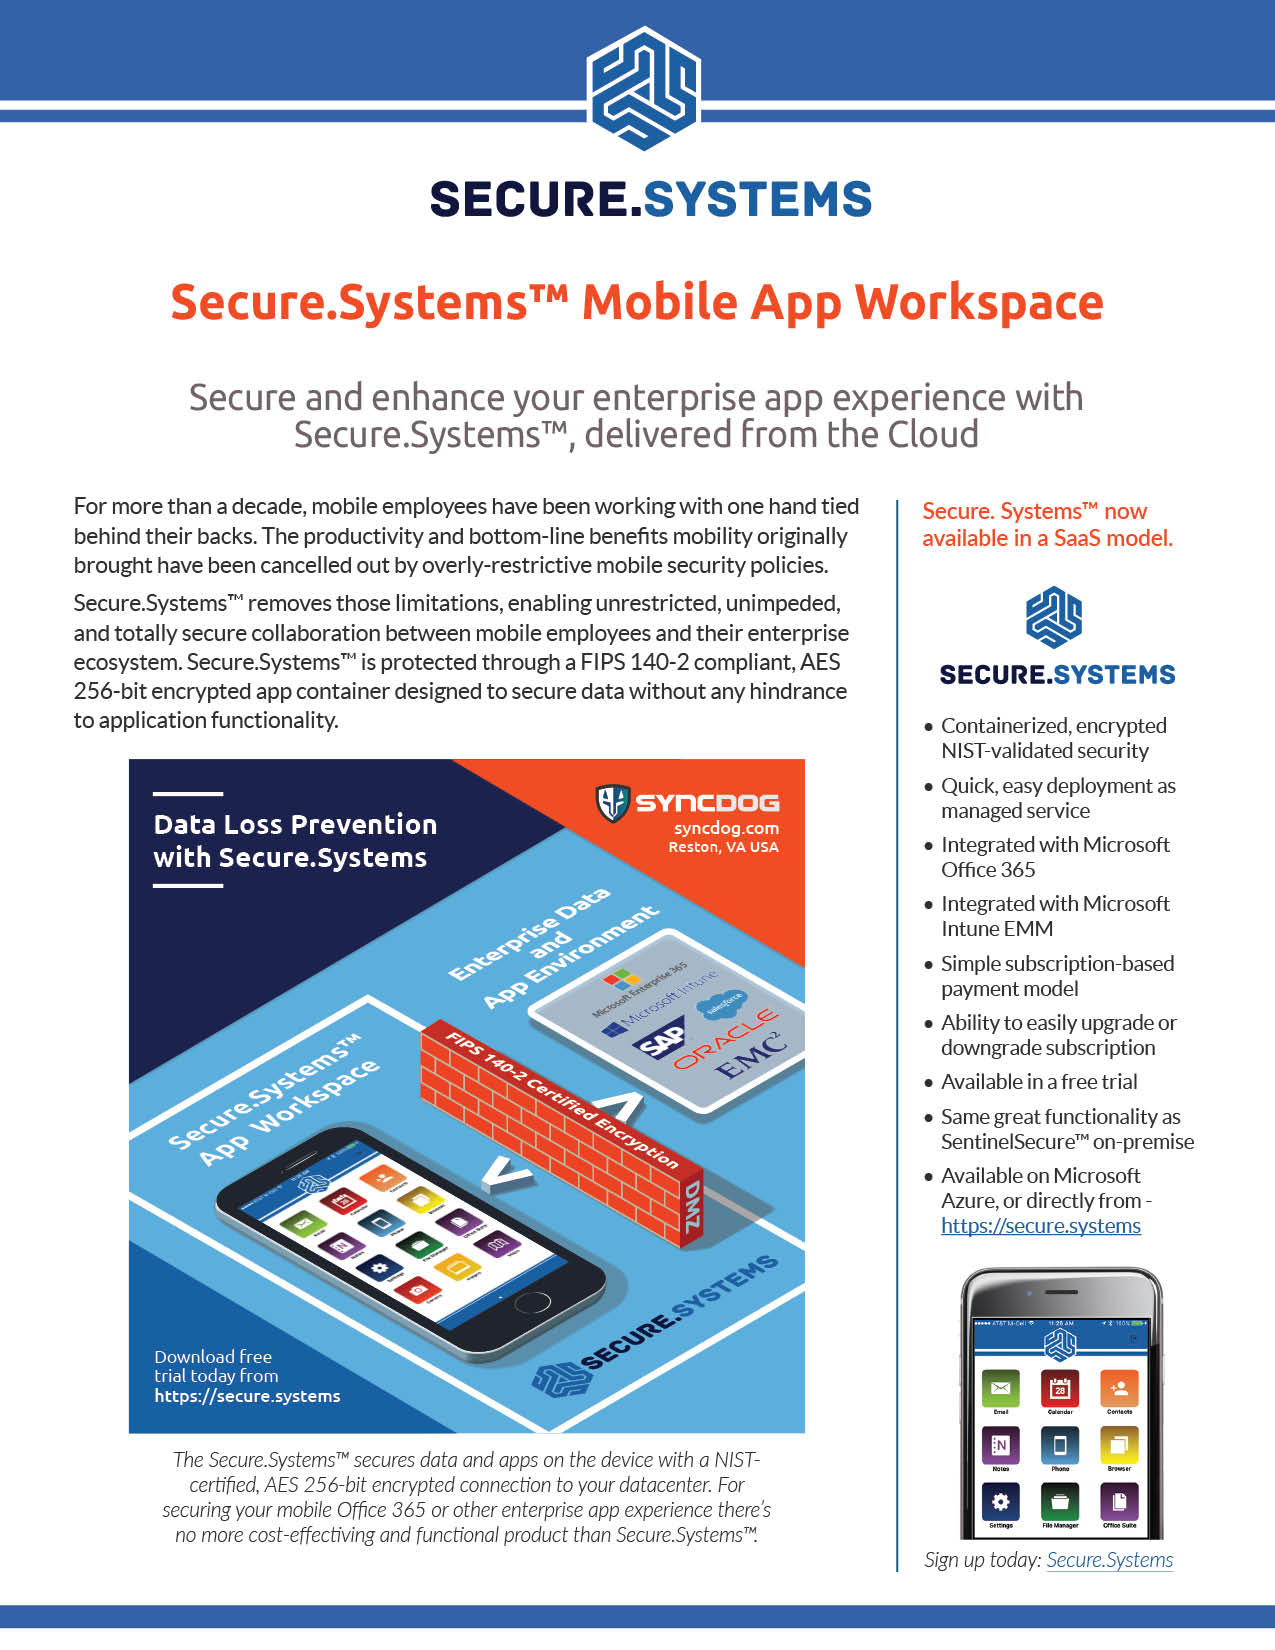 Mobile Device Secure Container App